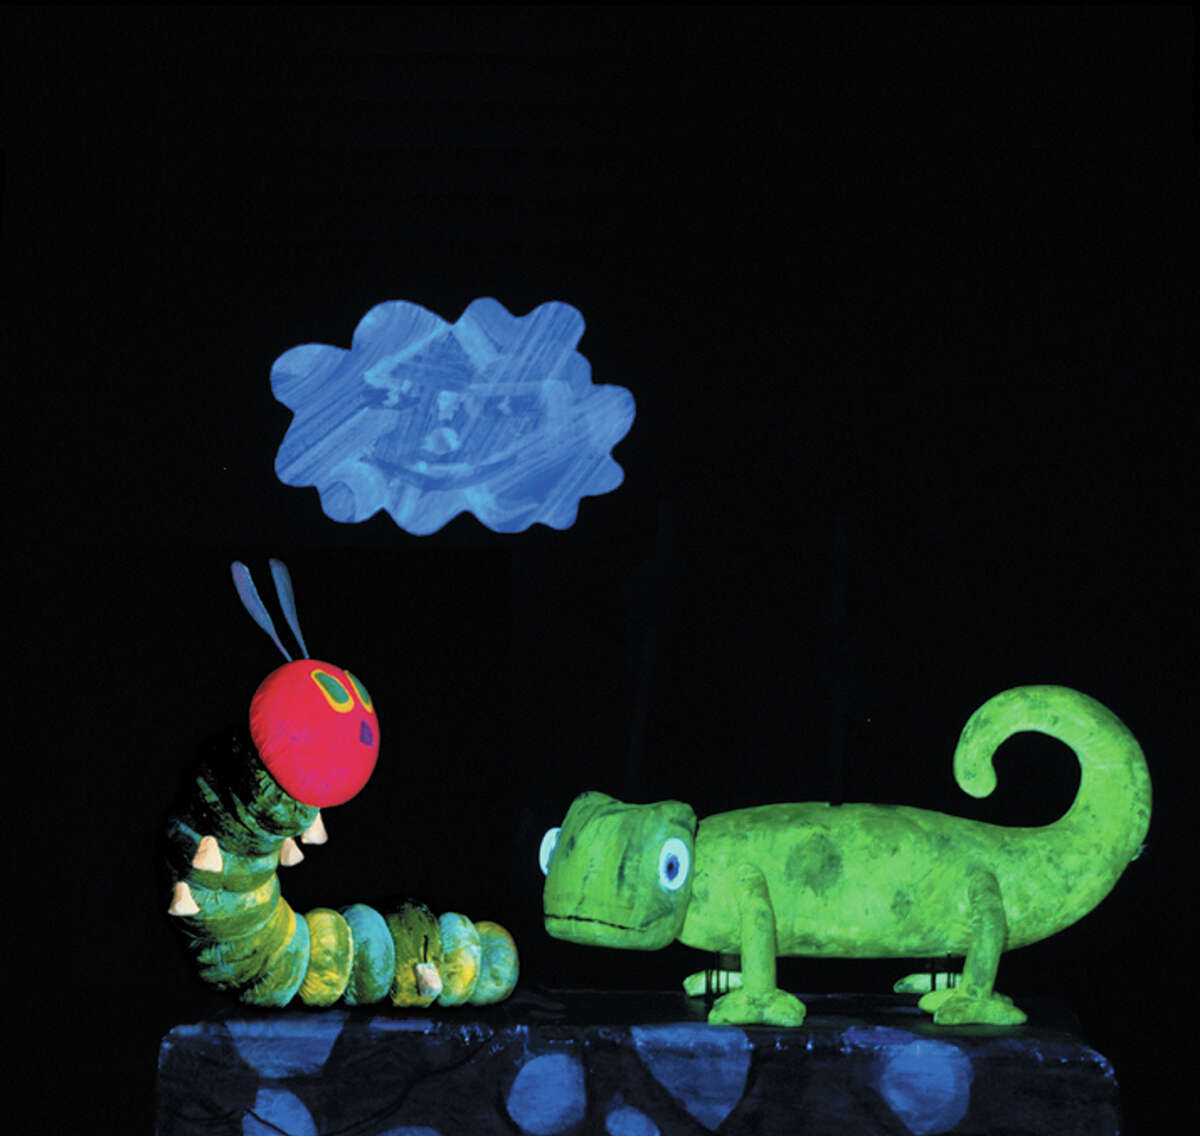 """The Children's Fine Arts Series launches its first season in residence at the Tobin Center for the Performing Arts with """"The Very Hungry Caterpillar and Other Eric Carle Favorites."""" The show, performed by the Mermaid Theatre of Nova Scotia, focuses on Carle's much-adored pictured books.6:30 p.m. Monday, H-E-B Performance Hall, Tobin Center, 100 Auditorium Circle. $9 at childrensfineartseries.org and tobi.tobincenter.org. 210-340-4060.- Deborah Martin"""